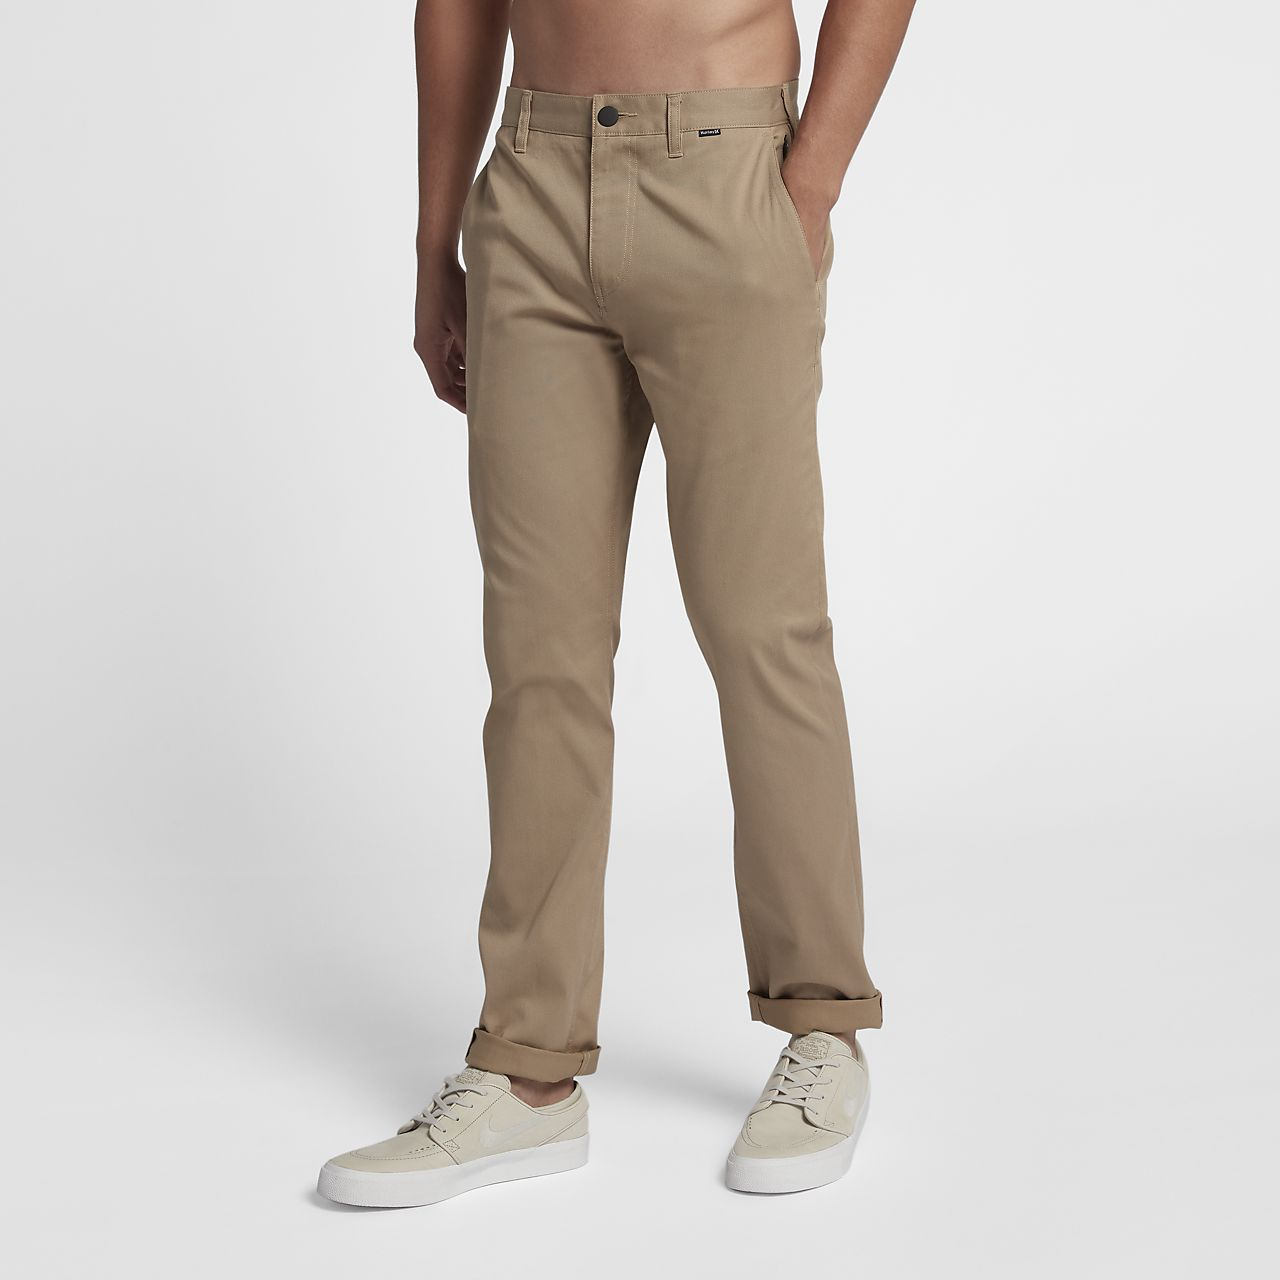 Hurley Dri-FIT Worker Herrenhose